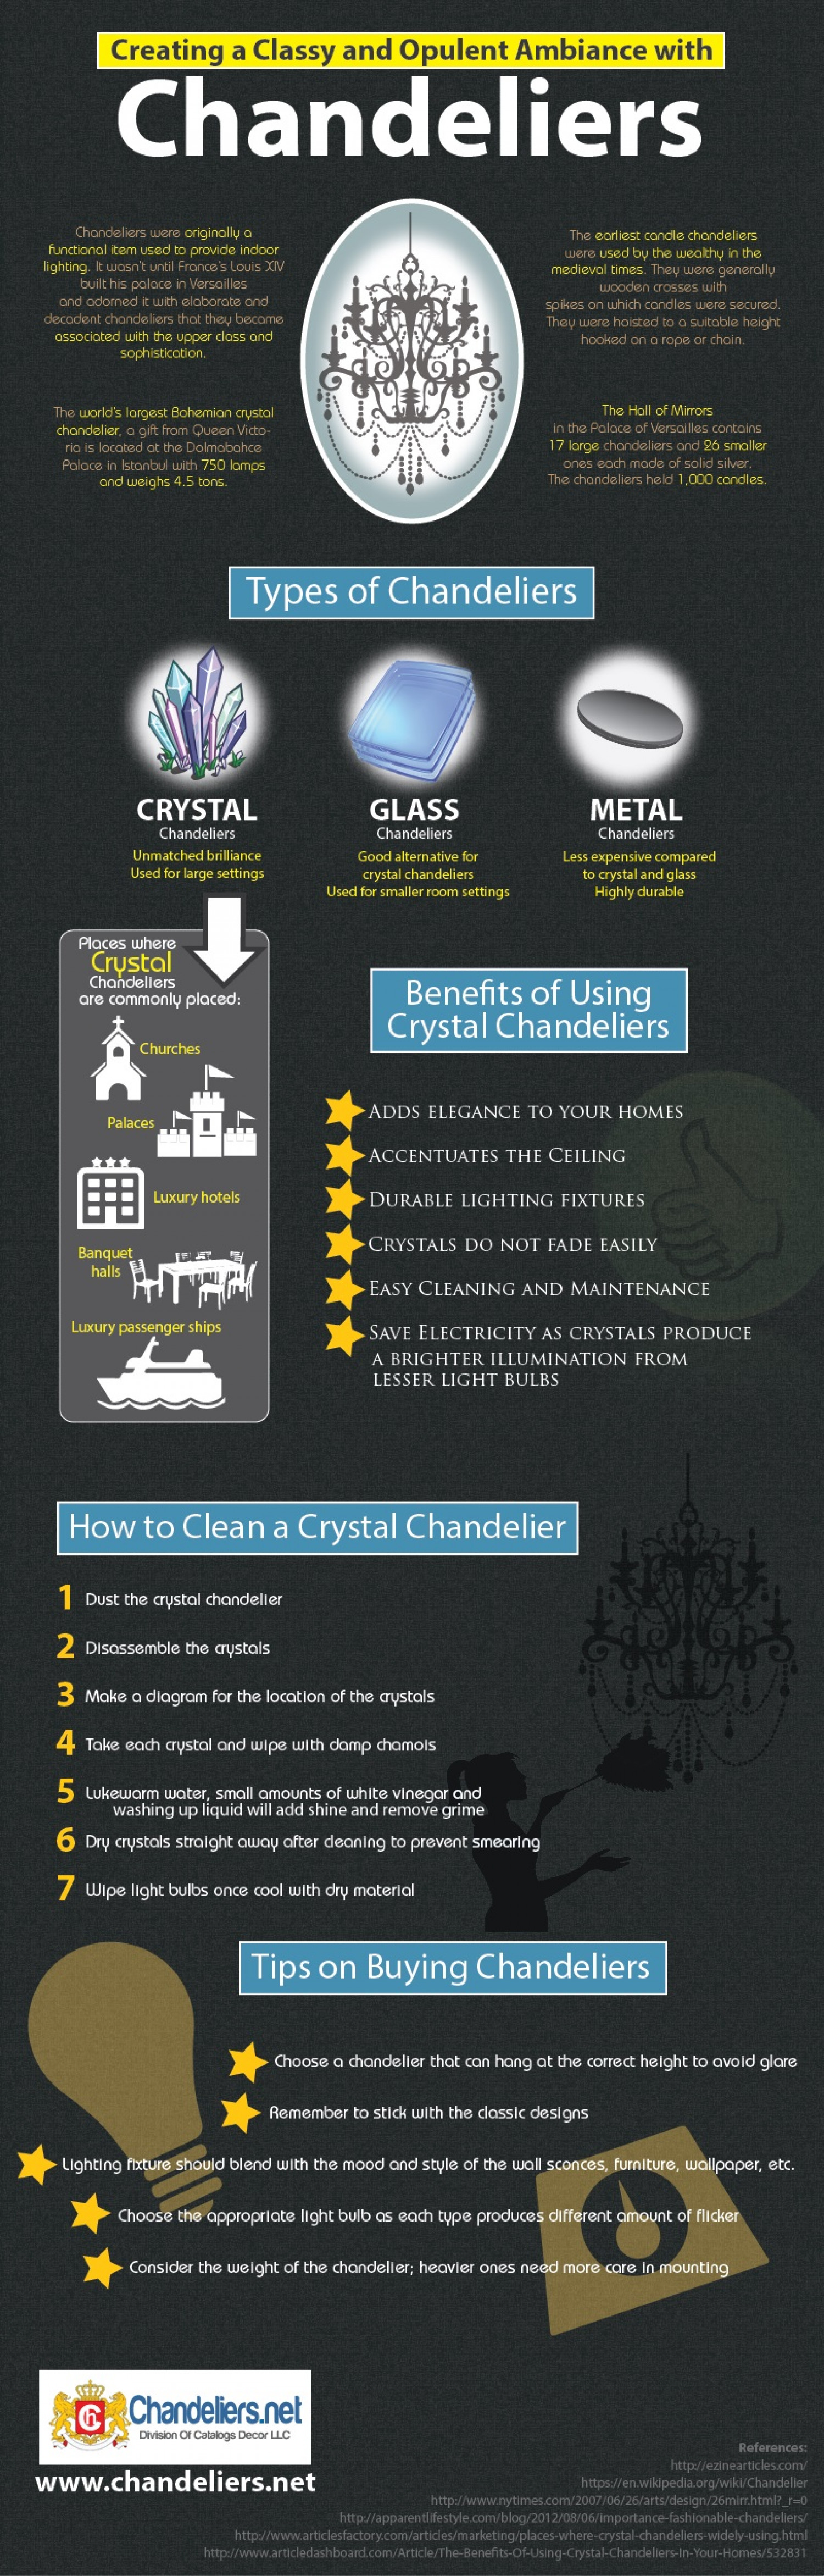 Creating a Classy and Opulent Ambiance with Chandeliers Infographic